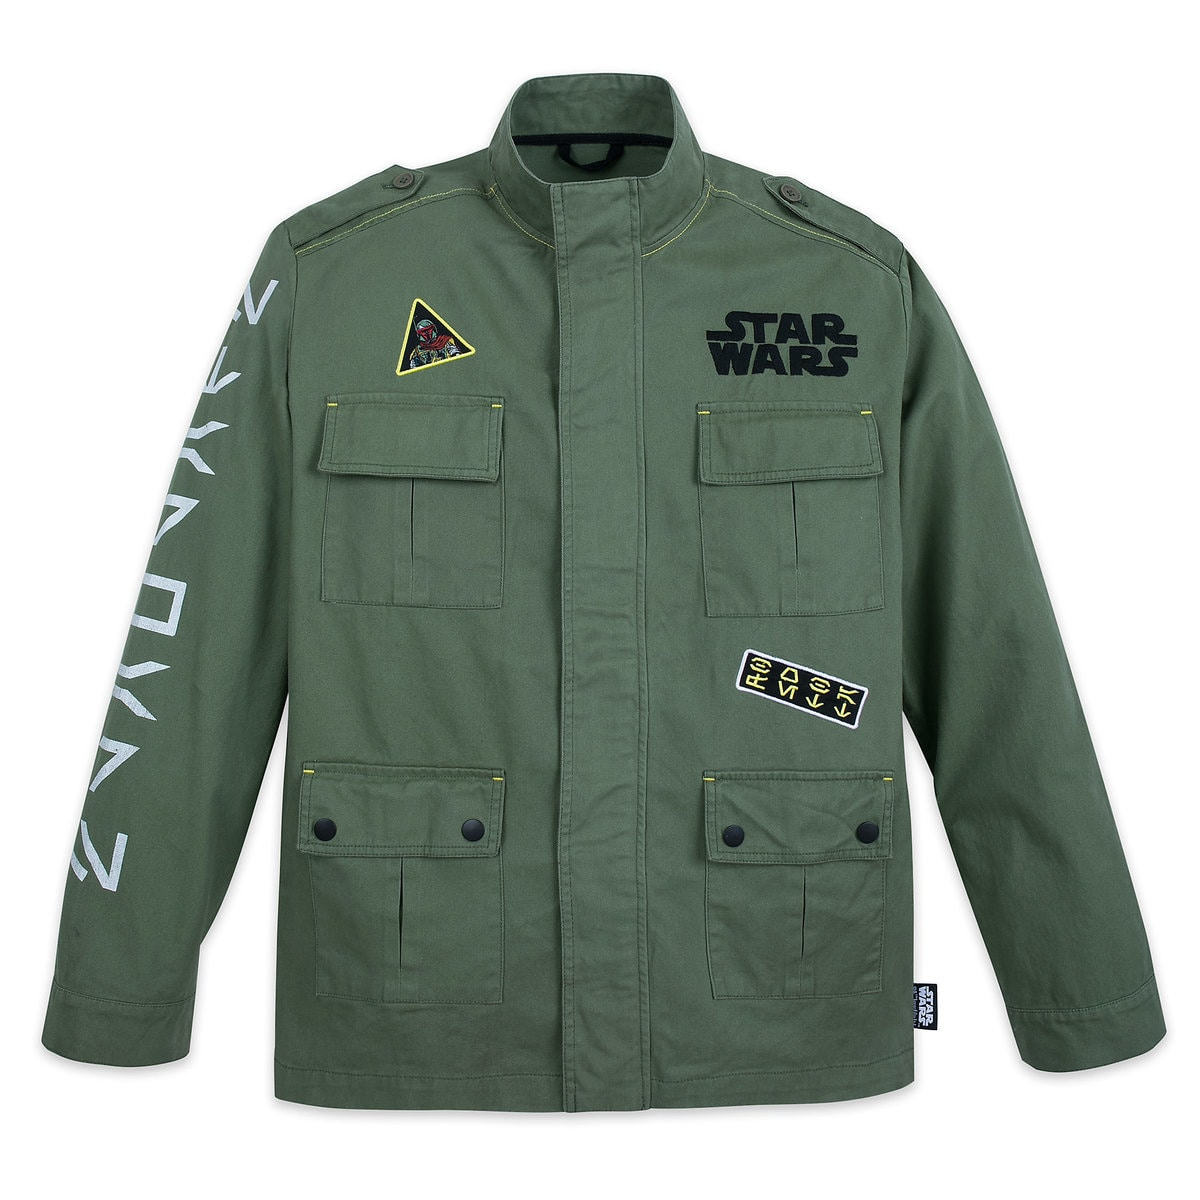 97e5aa5633 Product Image of Boba Fett Military Jacket for Adults - Star Wars # 1